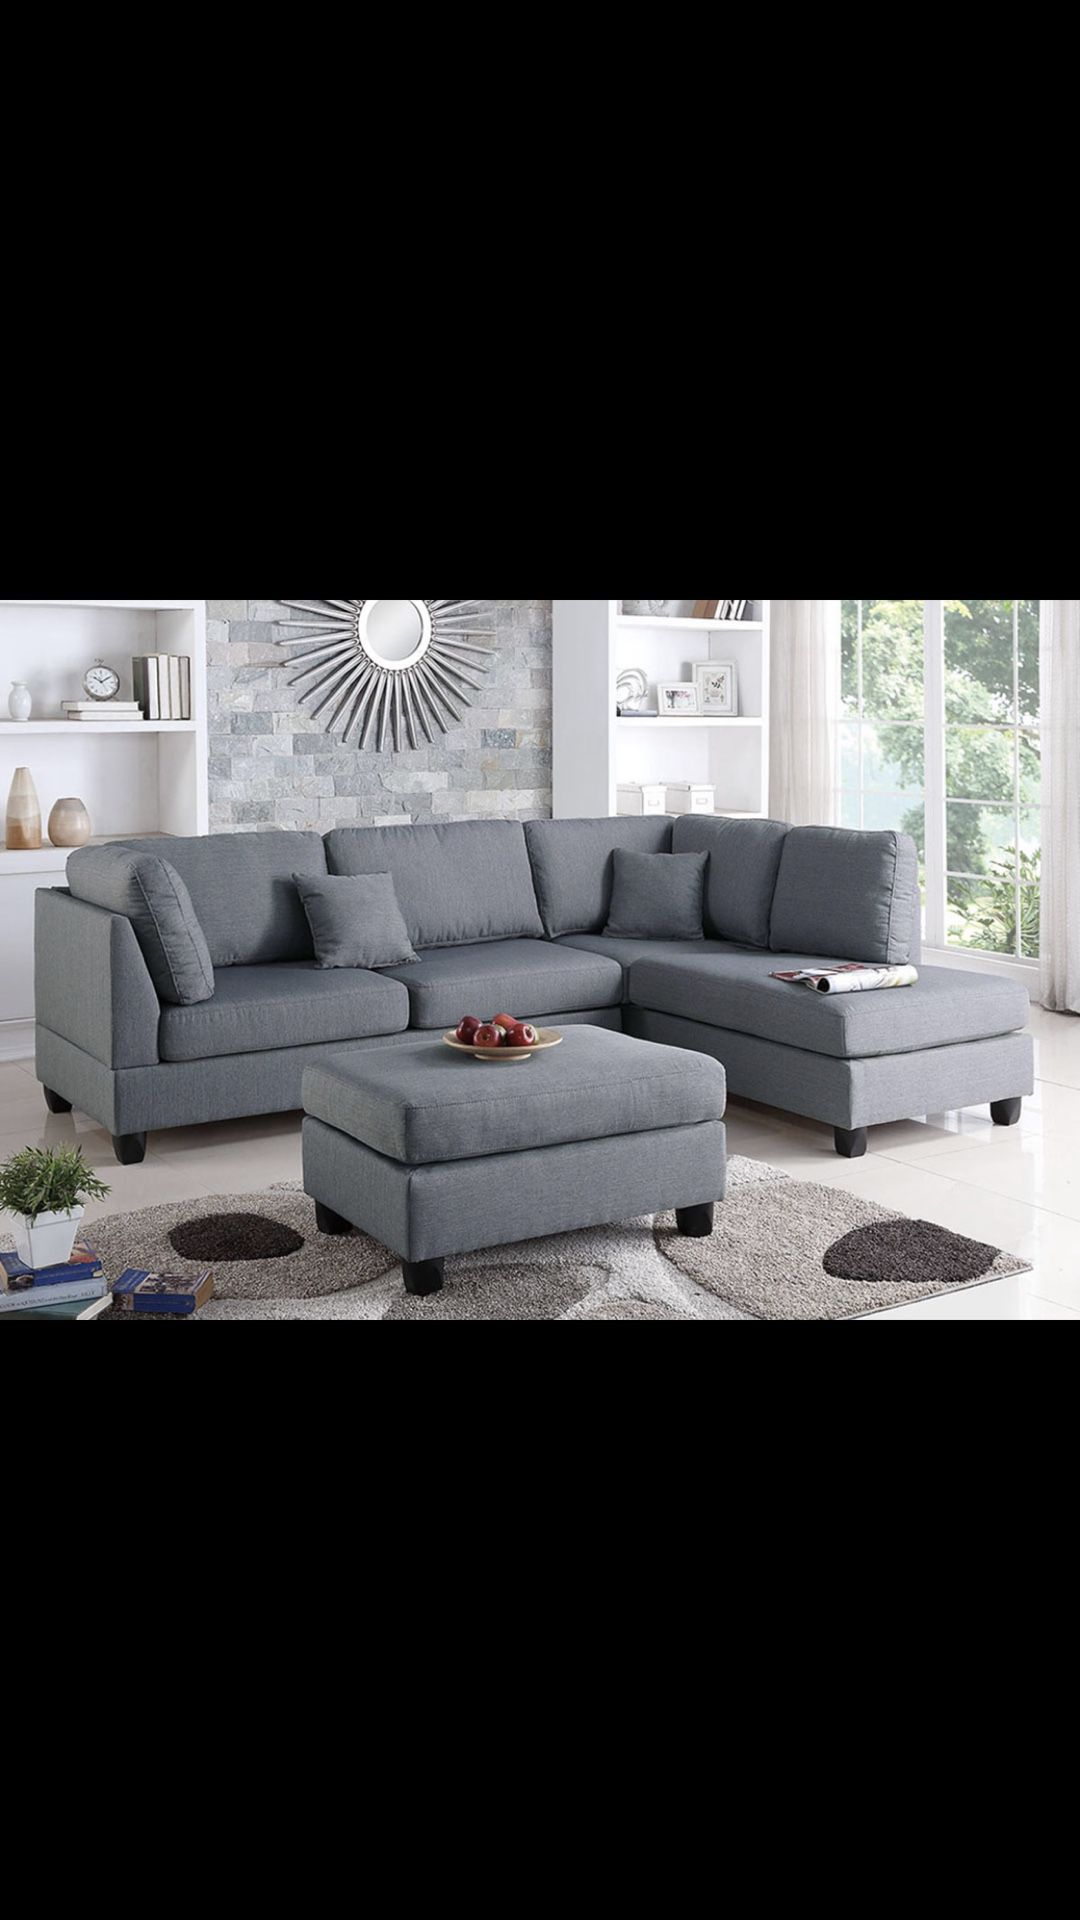 Sectional With Free Ottoman